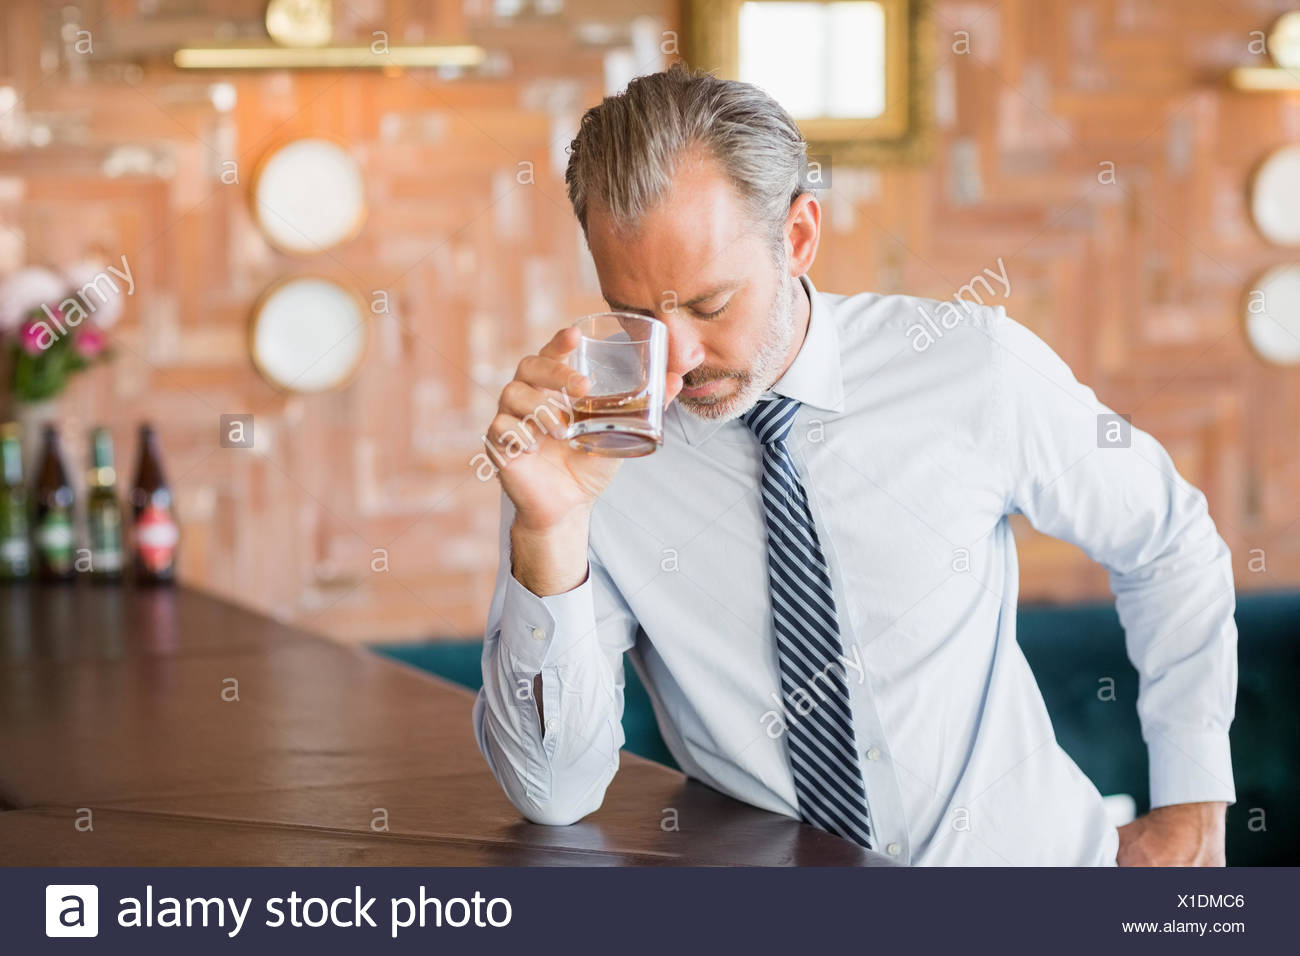 Businessman clutching whiskey glass to forehead - Stock Image